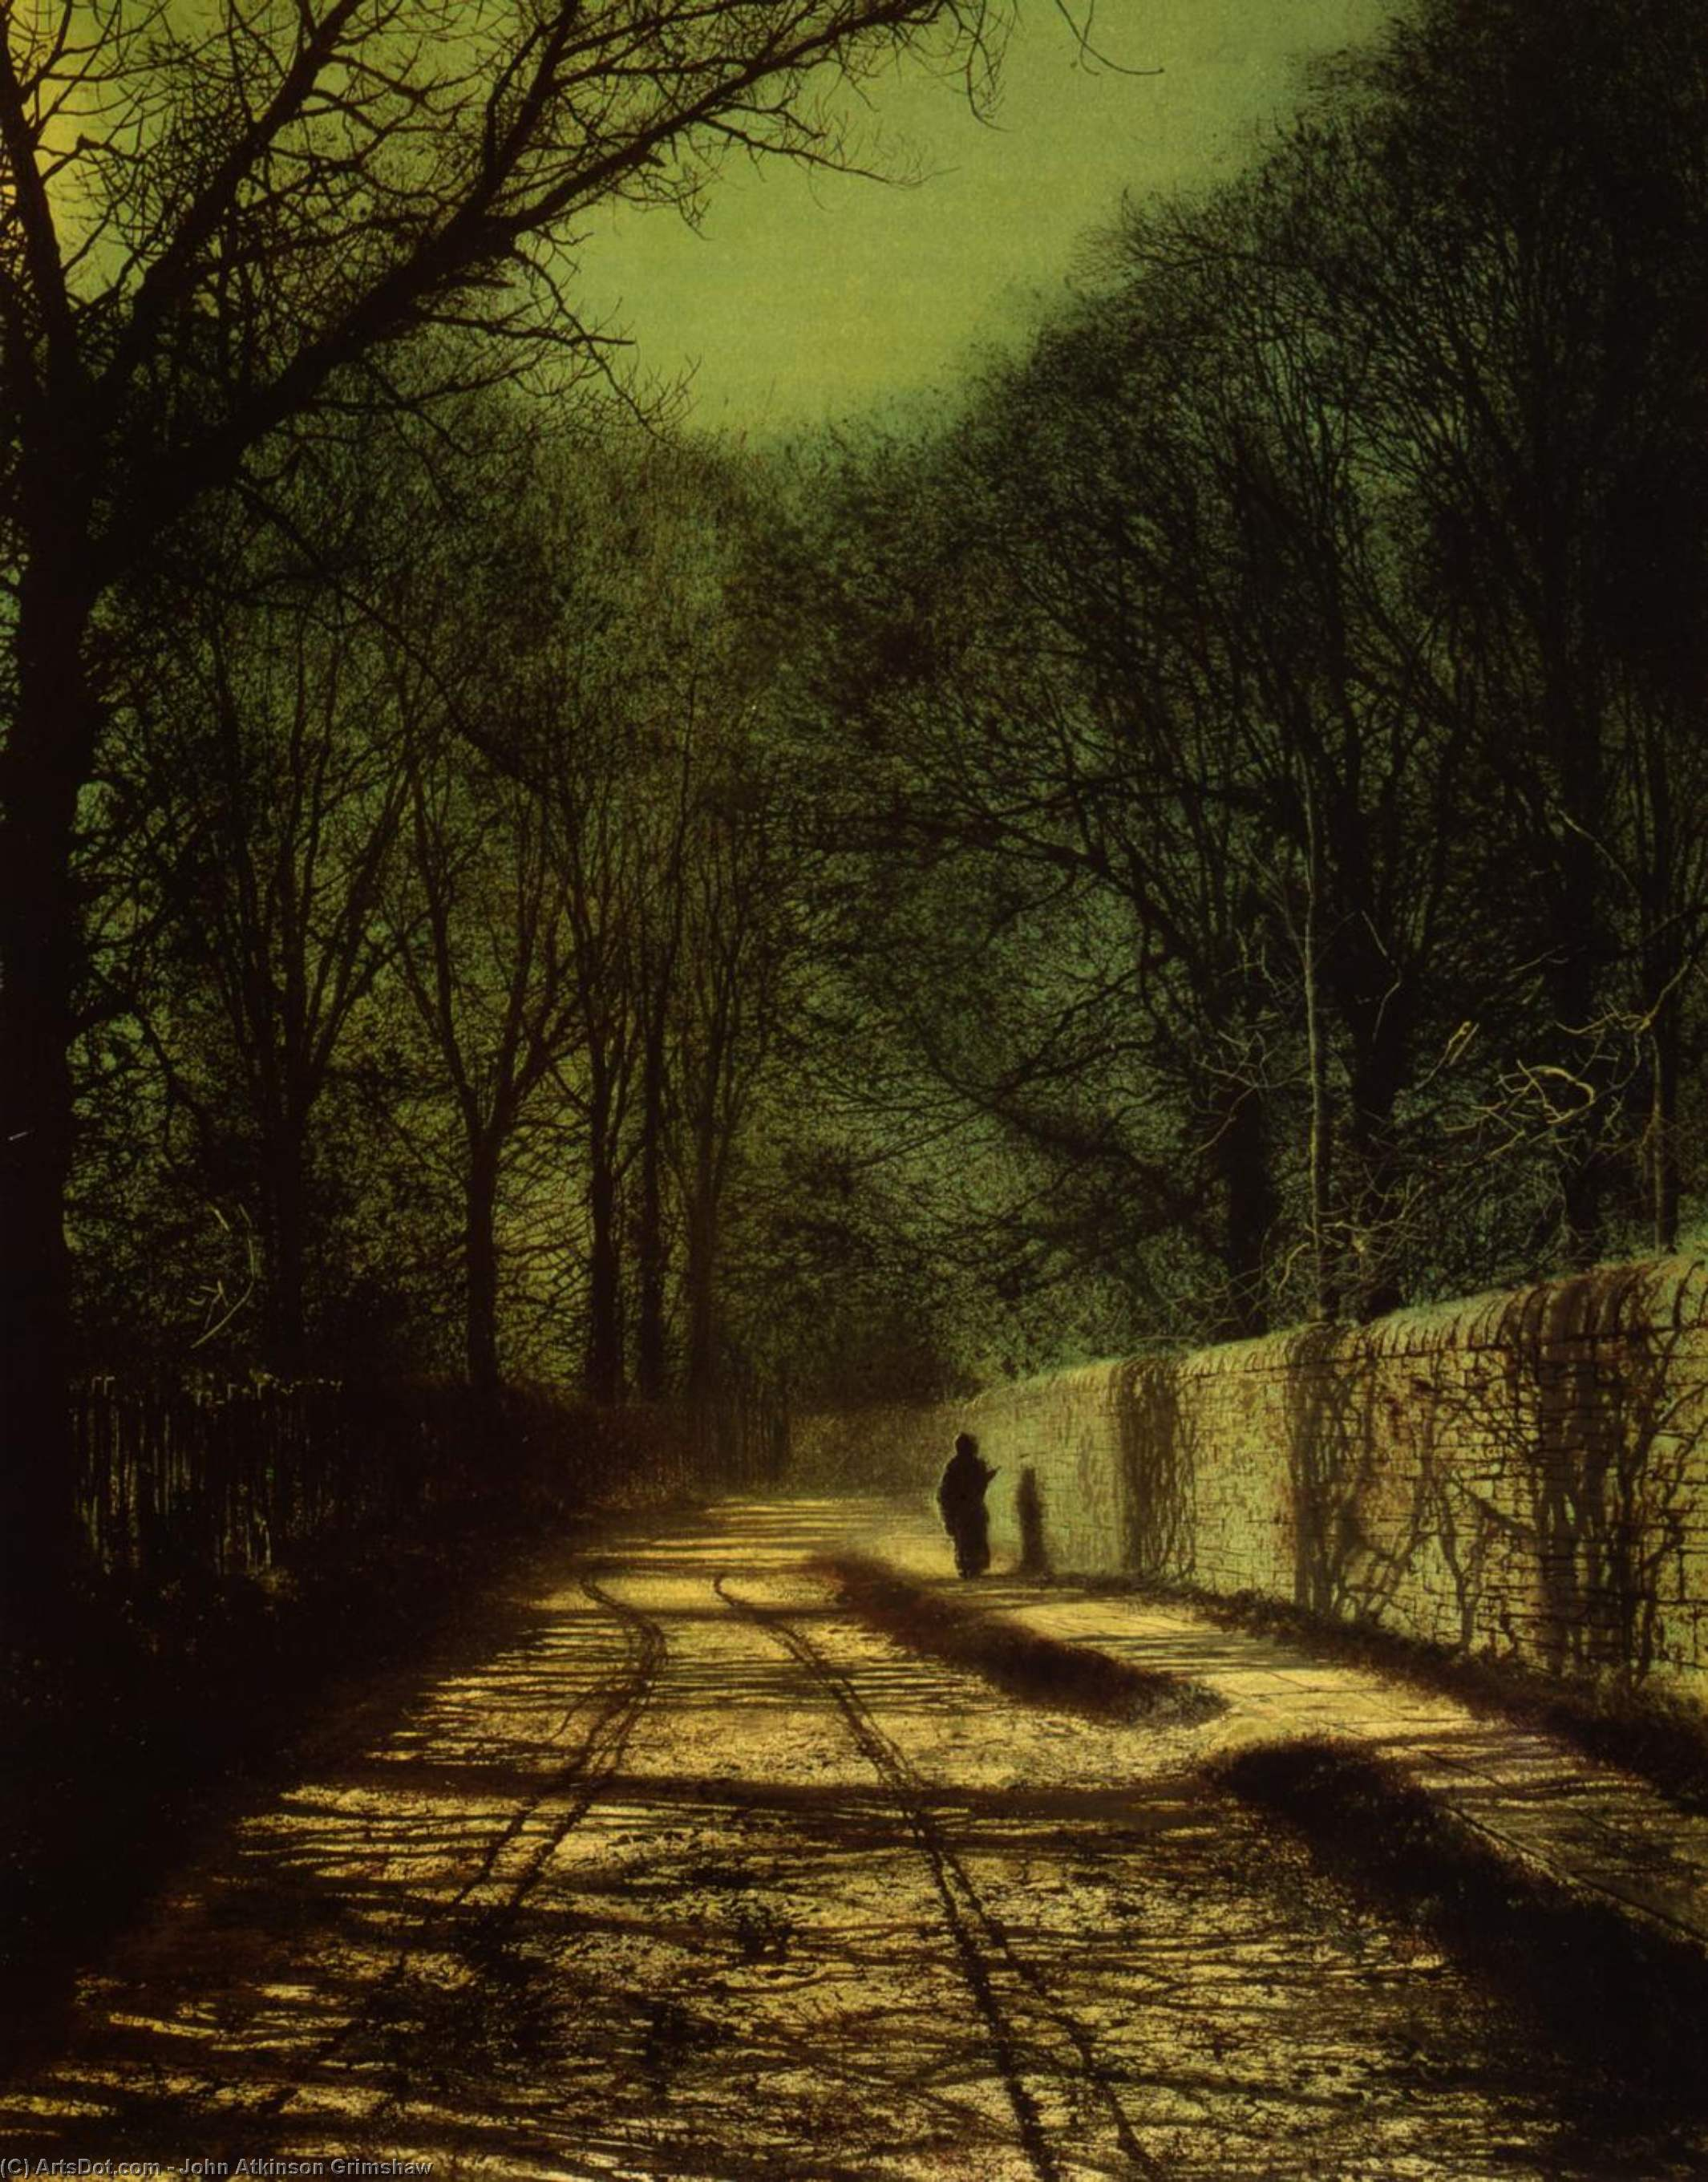 Tree Shadows on the Park Wall, Roundhay Park, Leeds by John Atkinson Grimshaw (1836-1893, United Kingdom)